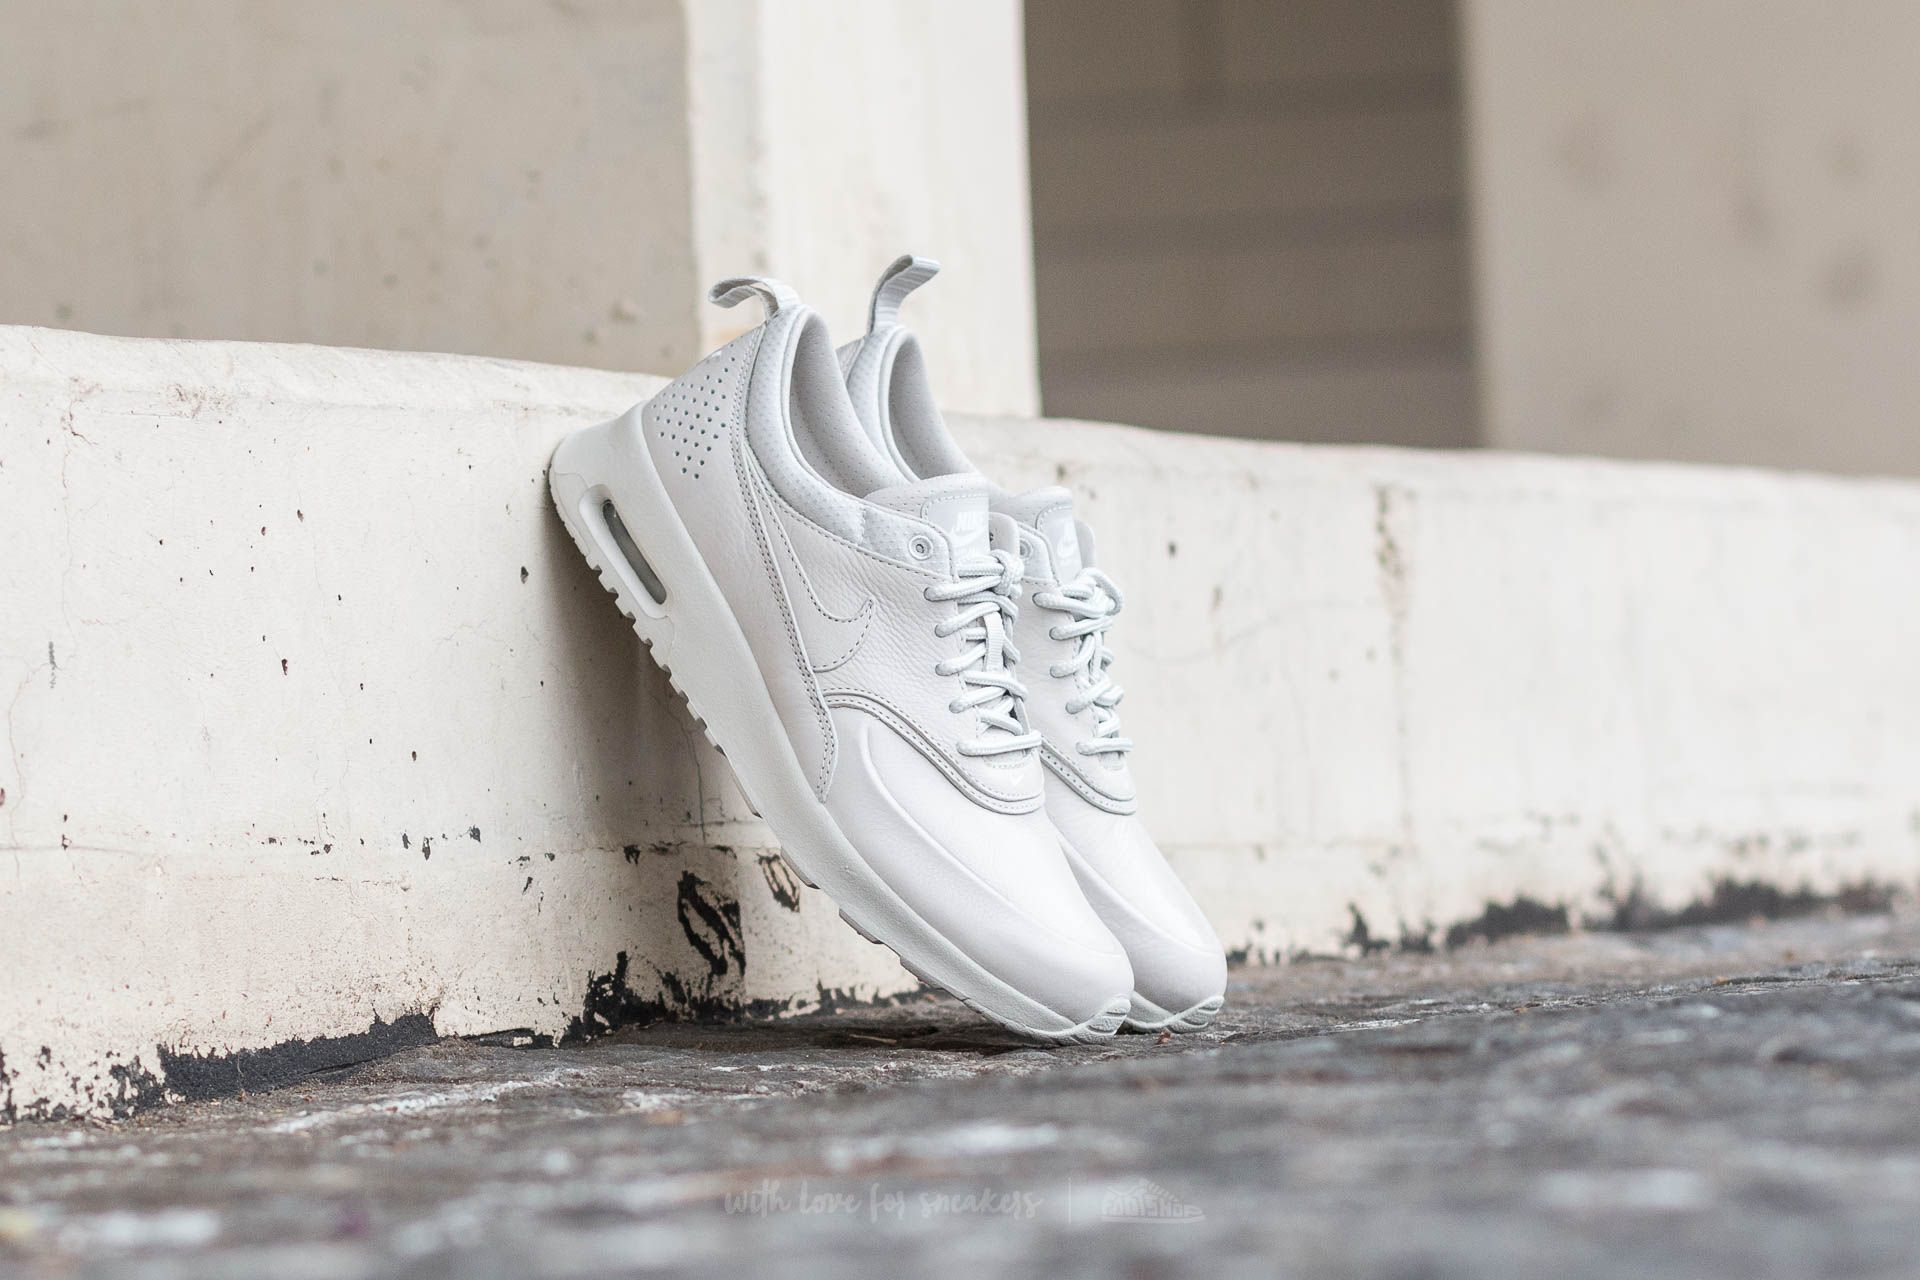 Nike Wmns Air Max Thea Pinnacle Light Bone/ Light Bone-Sail